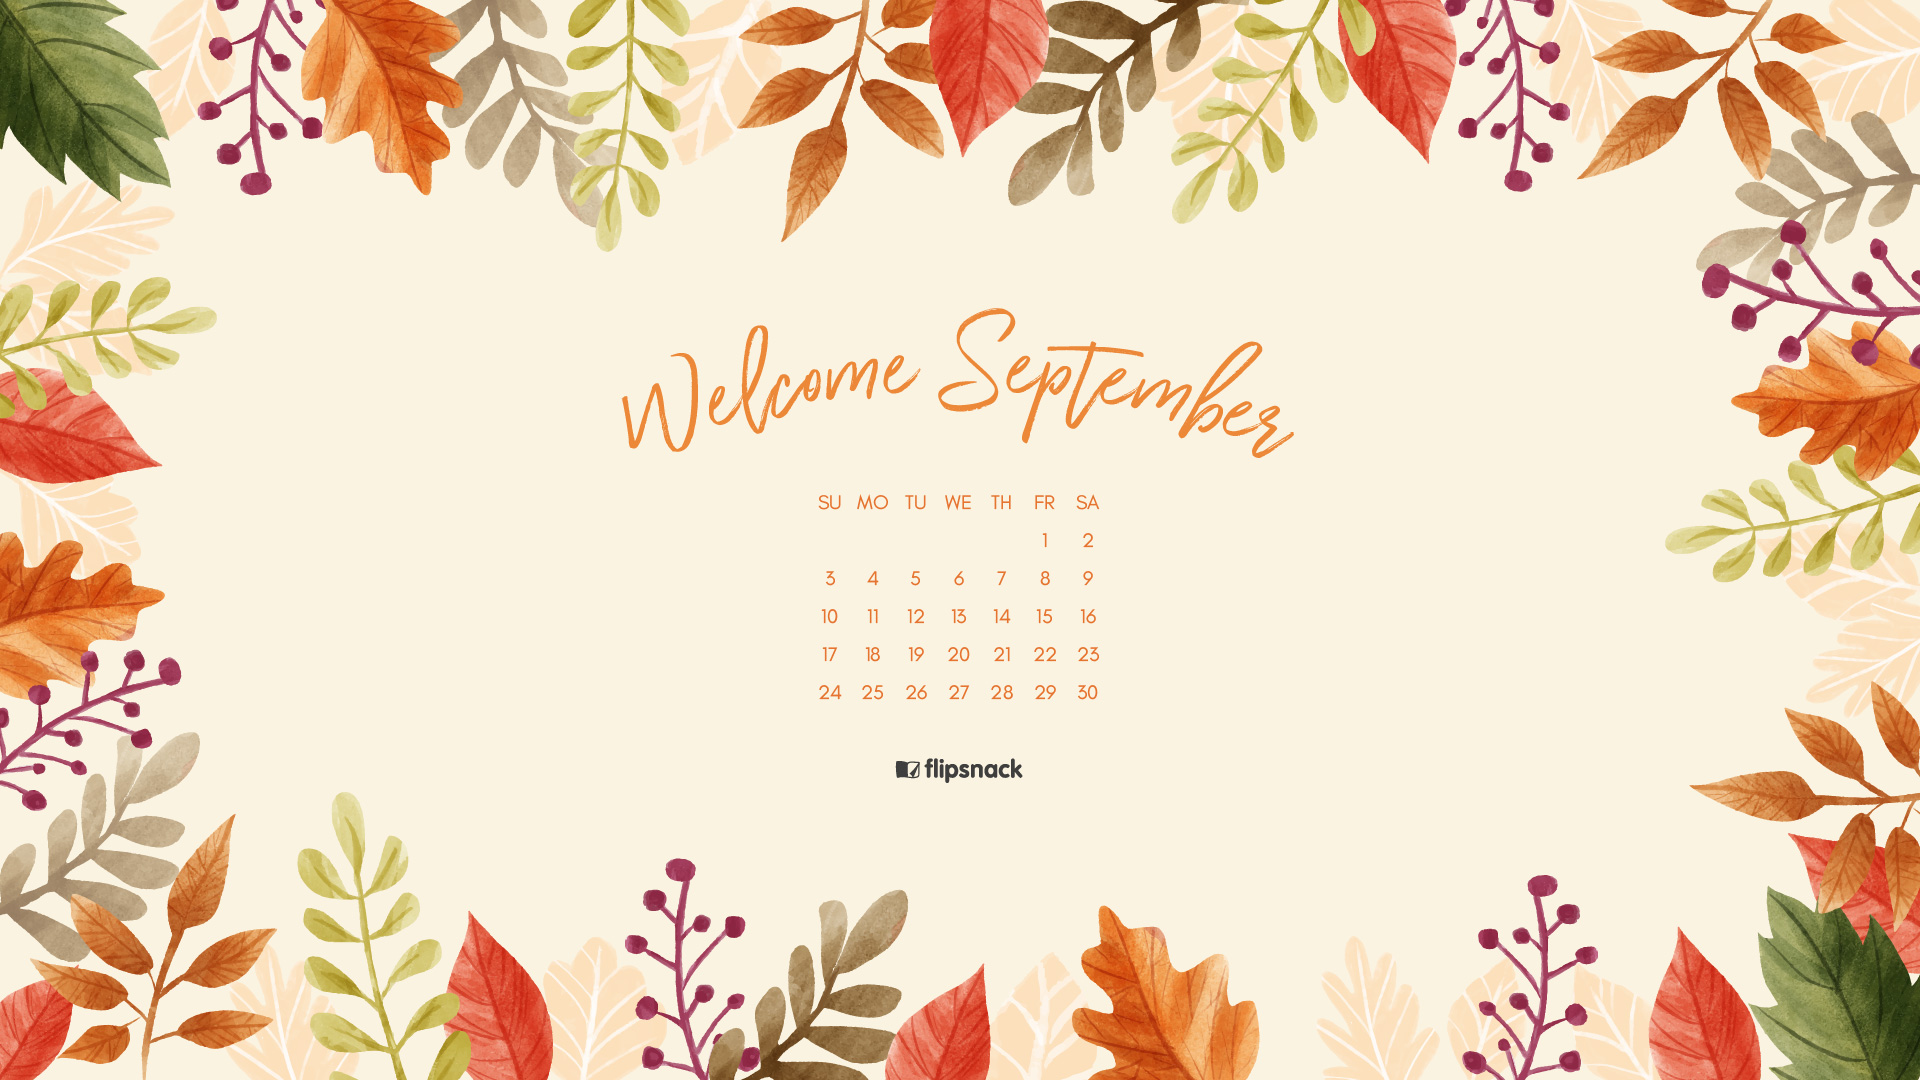 september 2017 wallpaper download calendar